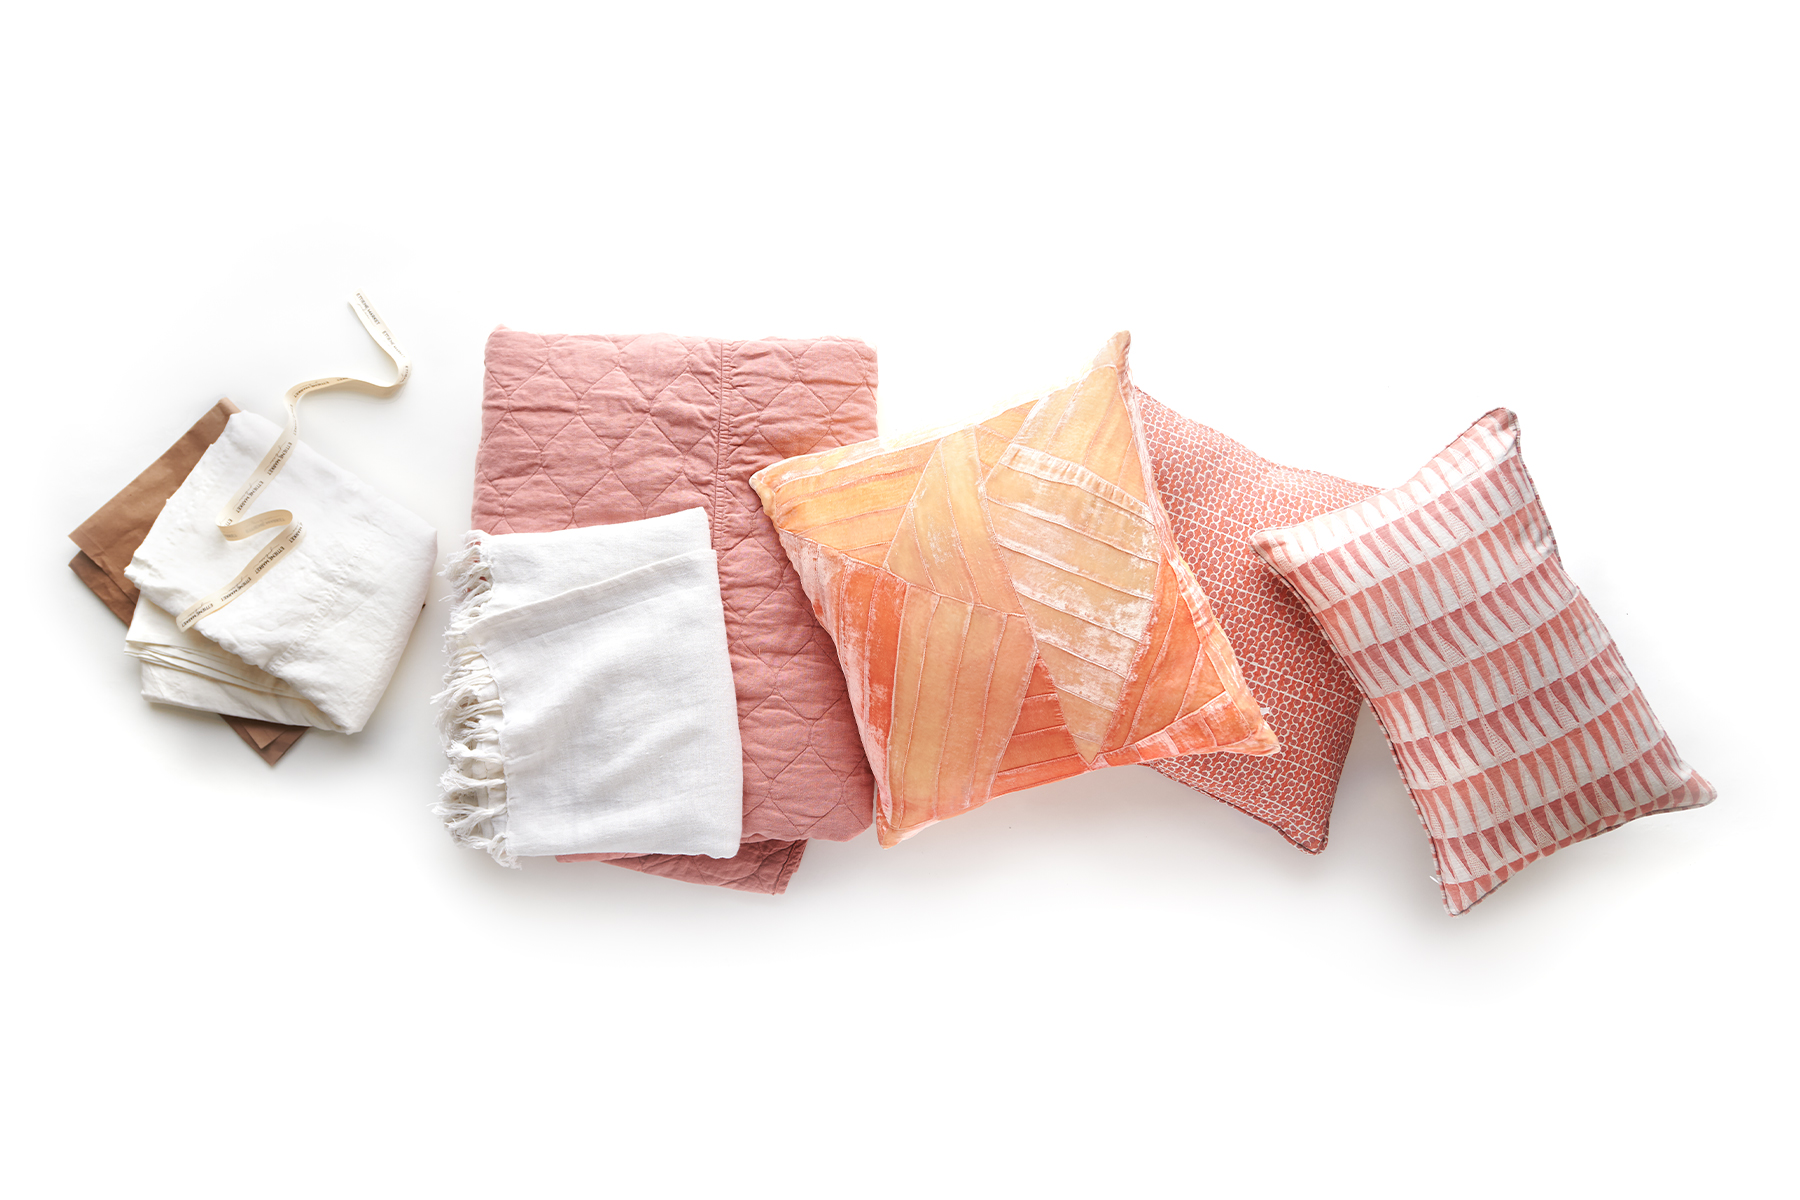 Assorted pillows and bedding Mary Cates and Co.